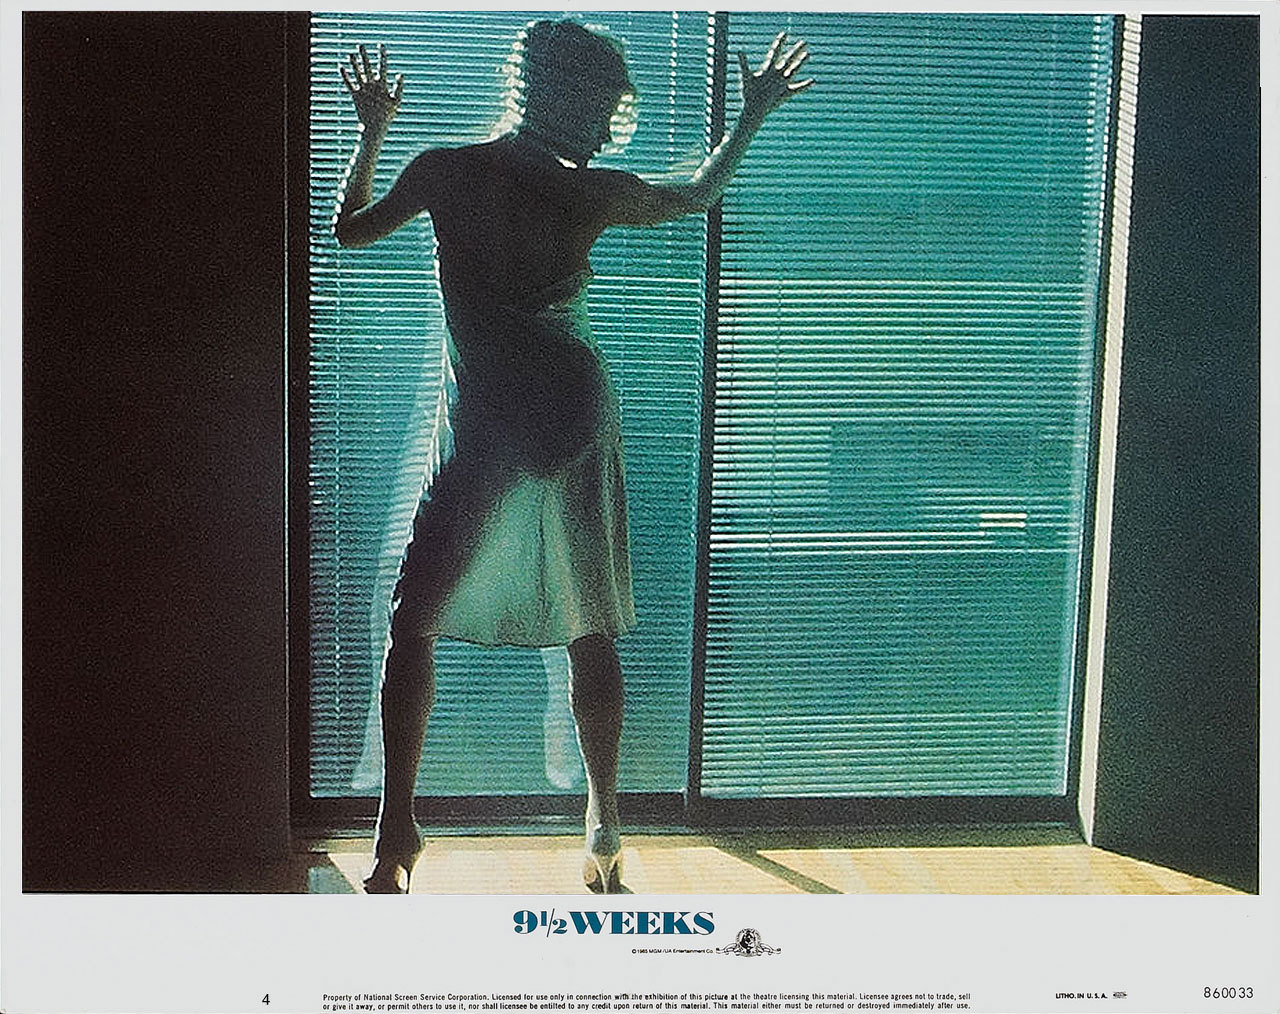 9 1/2 Weeks, US lobby card. 1986